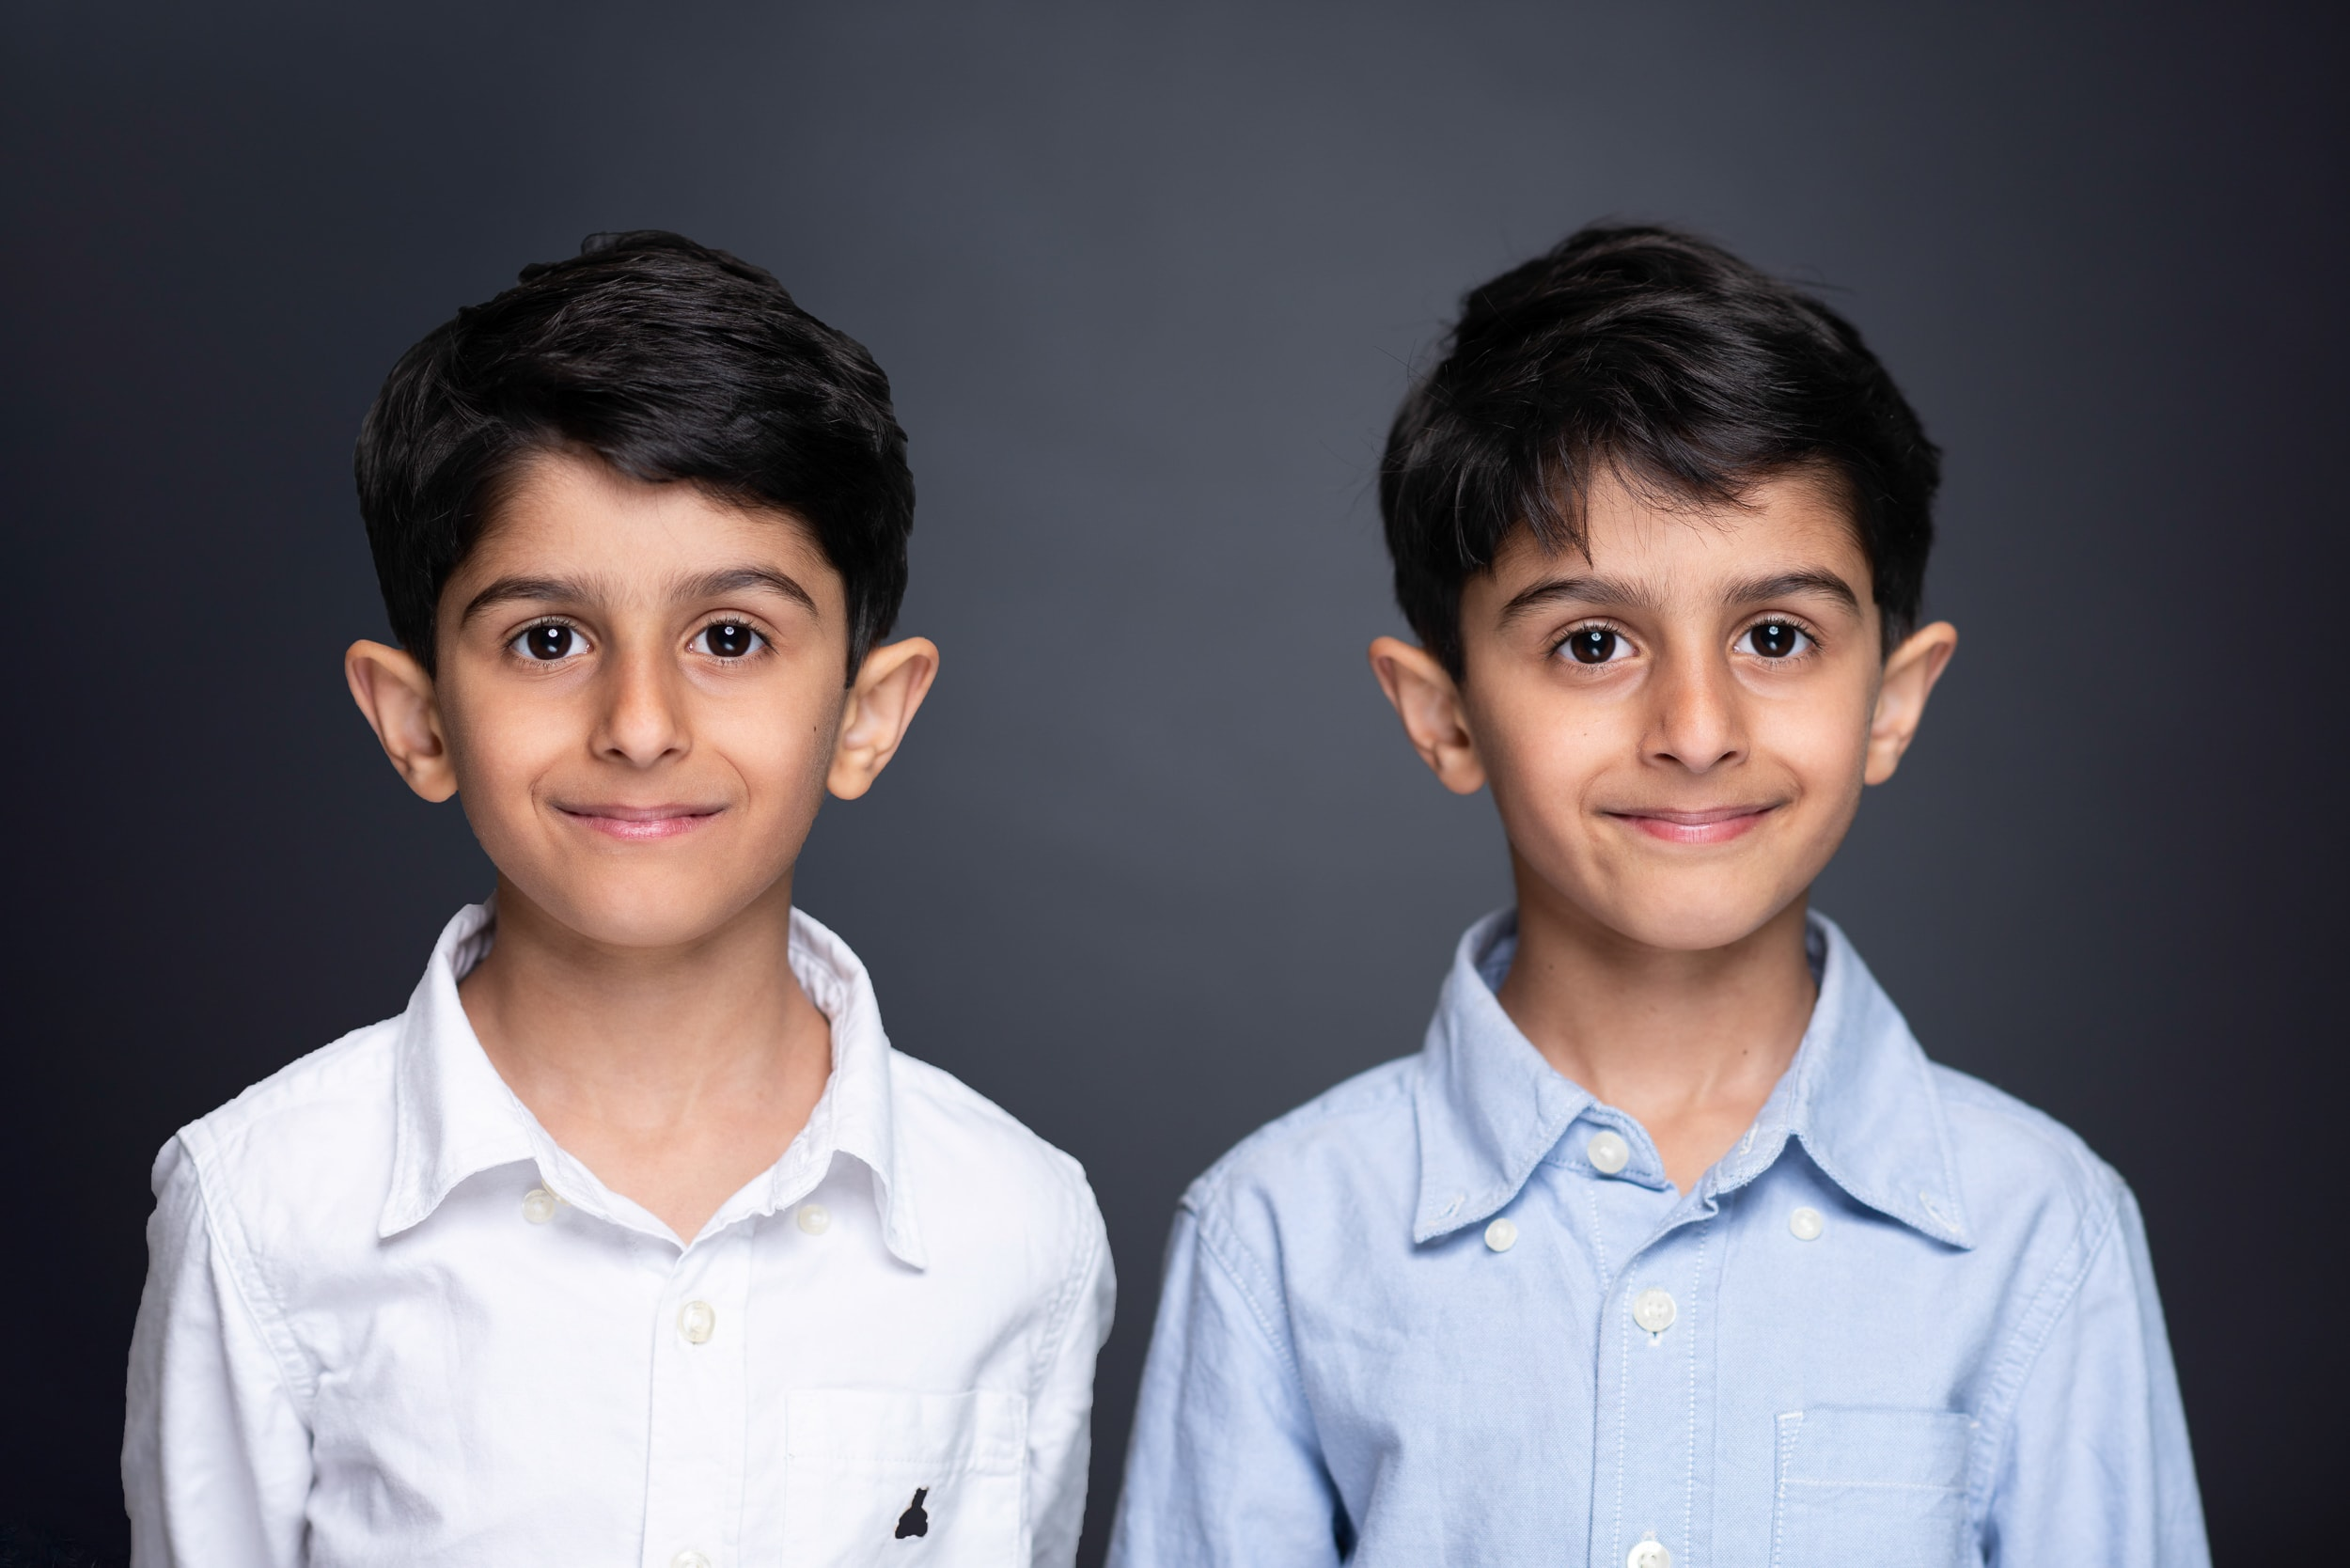 shoot-me-now-twins-headshot-session.jpg